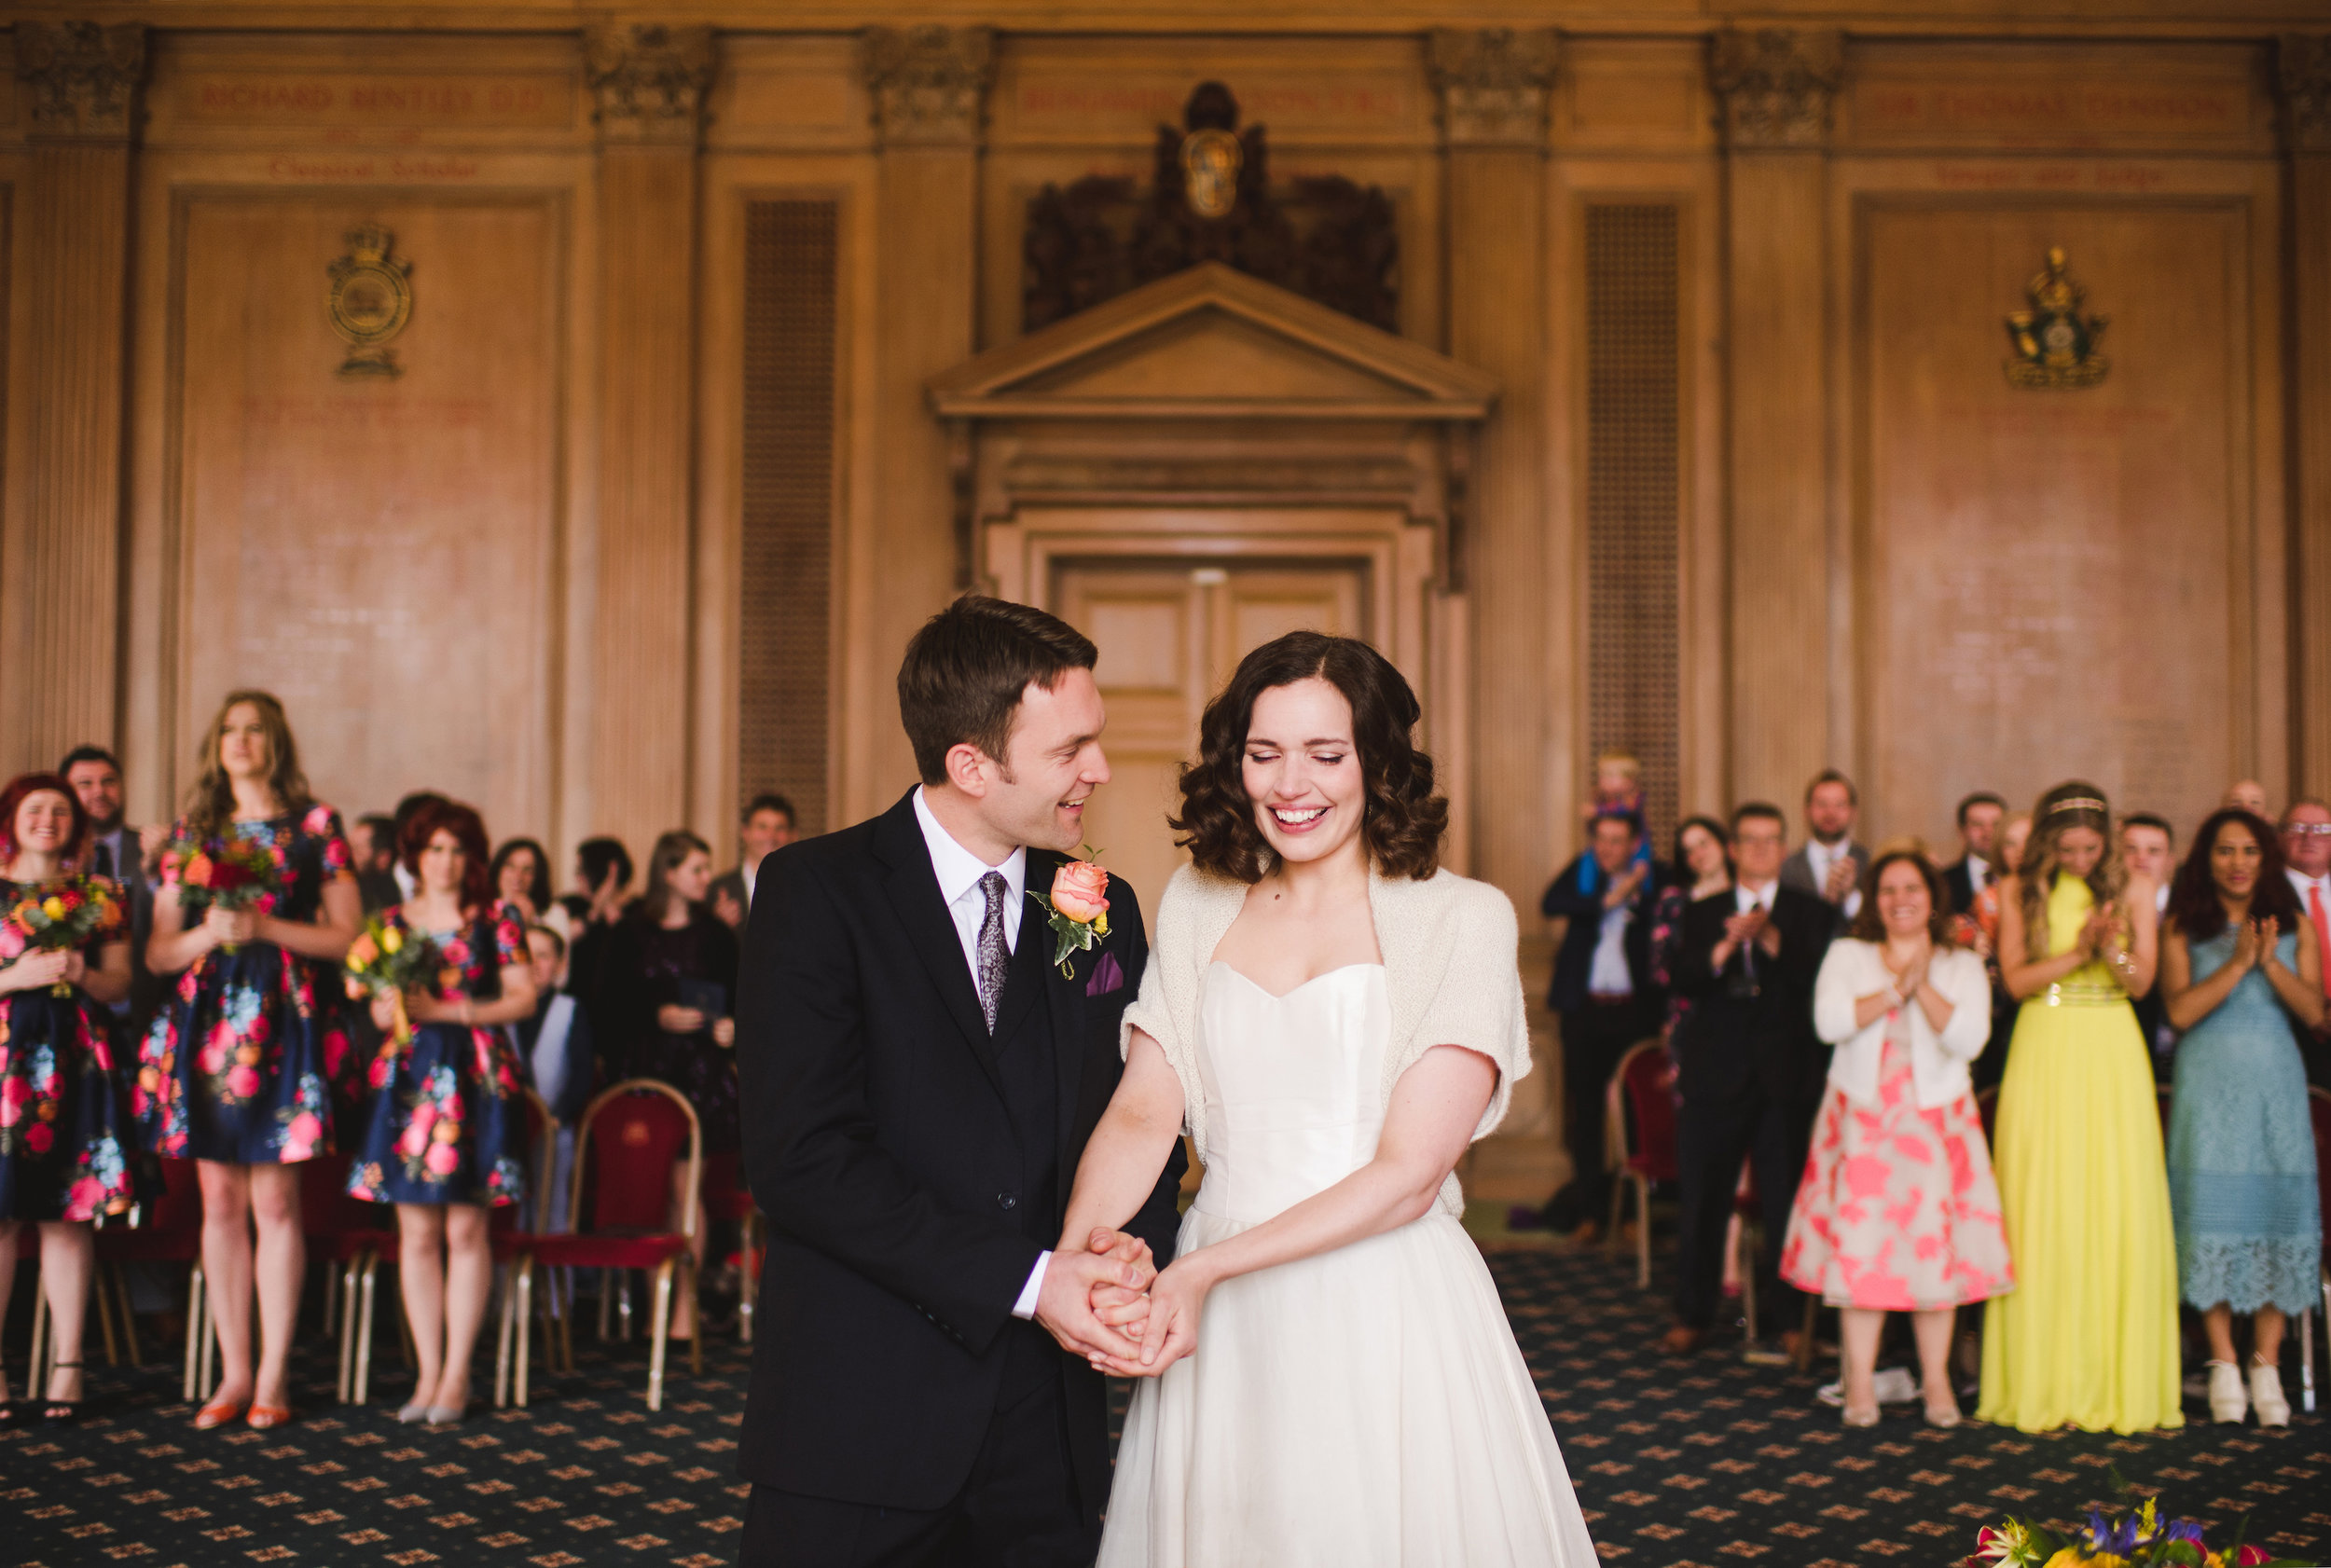 117 Leeds Civic Hall Wedding Yorkshire Wedding Photography Bride Groom.jpg